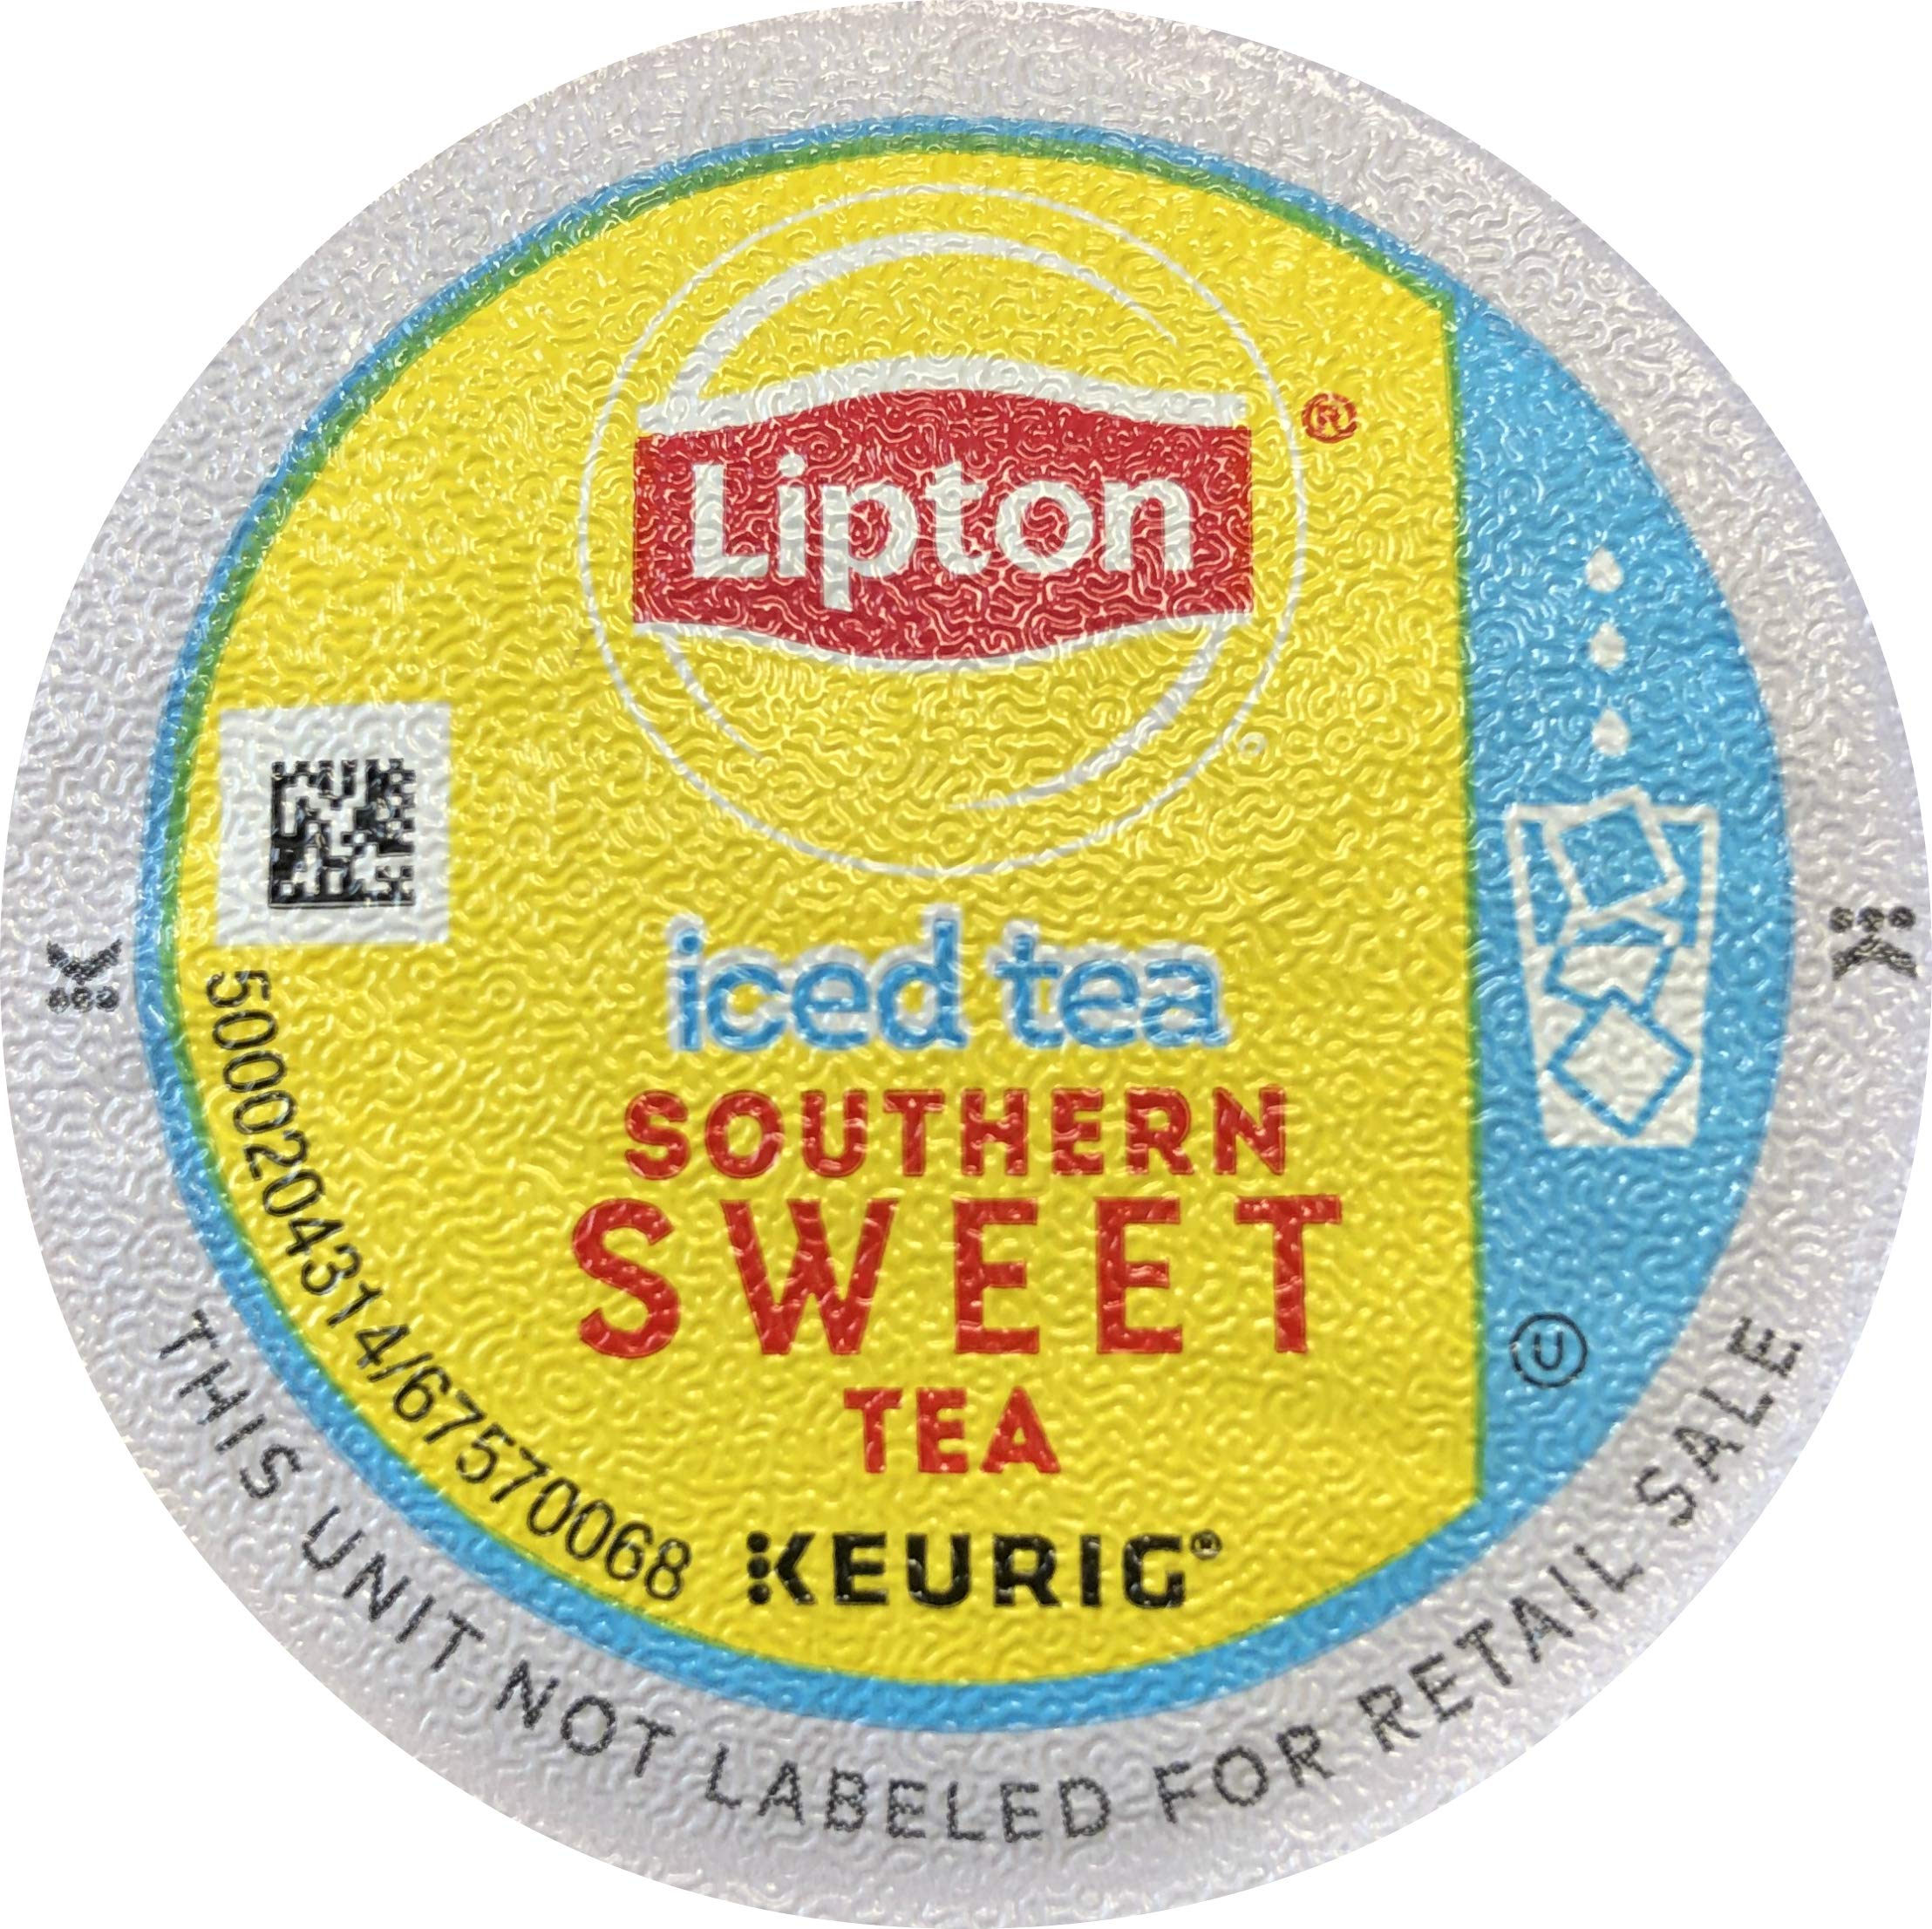 Lipton Southern Sweet Tea K-Cup for Keurig Brewers, 54 count by Lipton